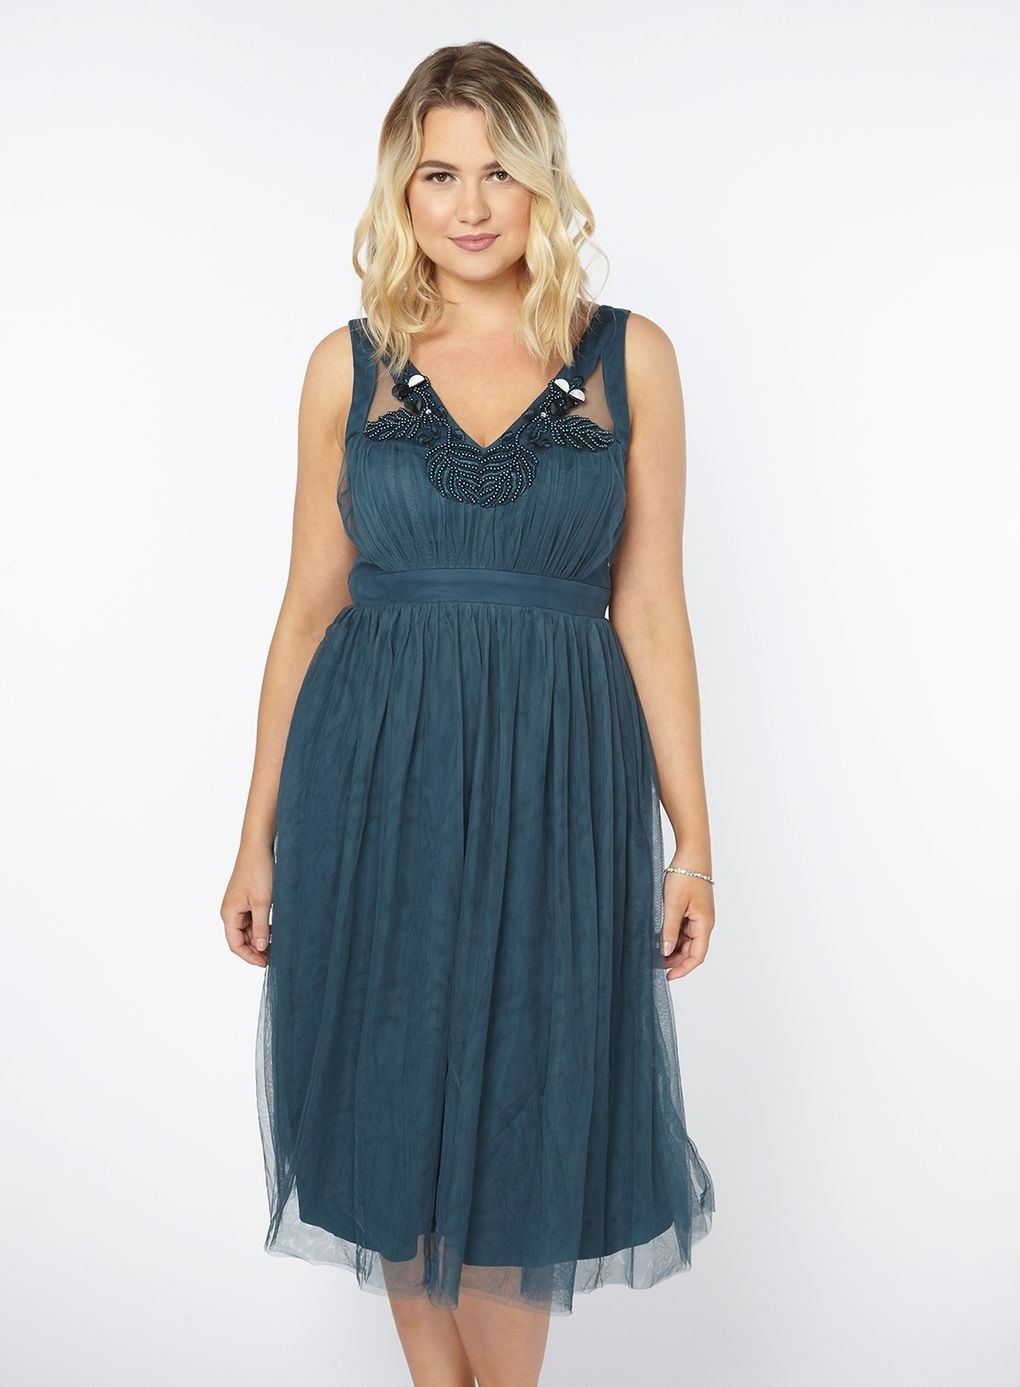 4b0c526324a Evans offers stunning plus-size formal dresses that ll make for some  ah-mazing prom photos.